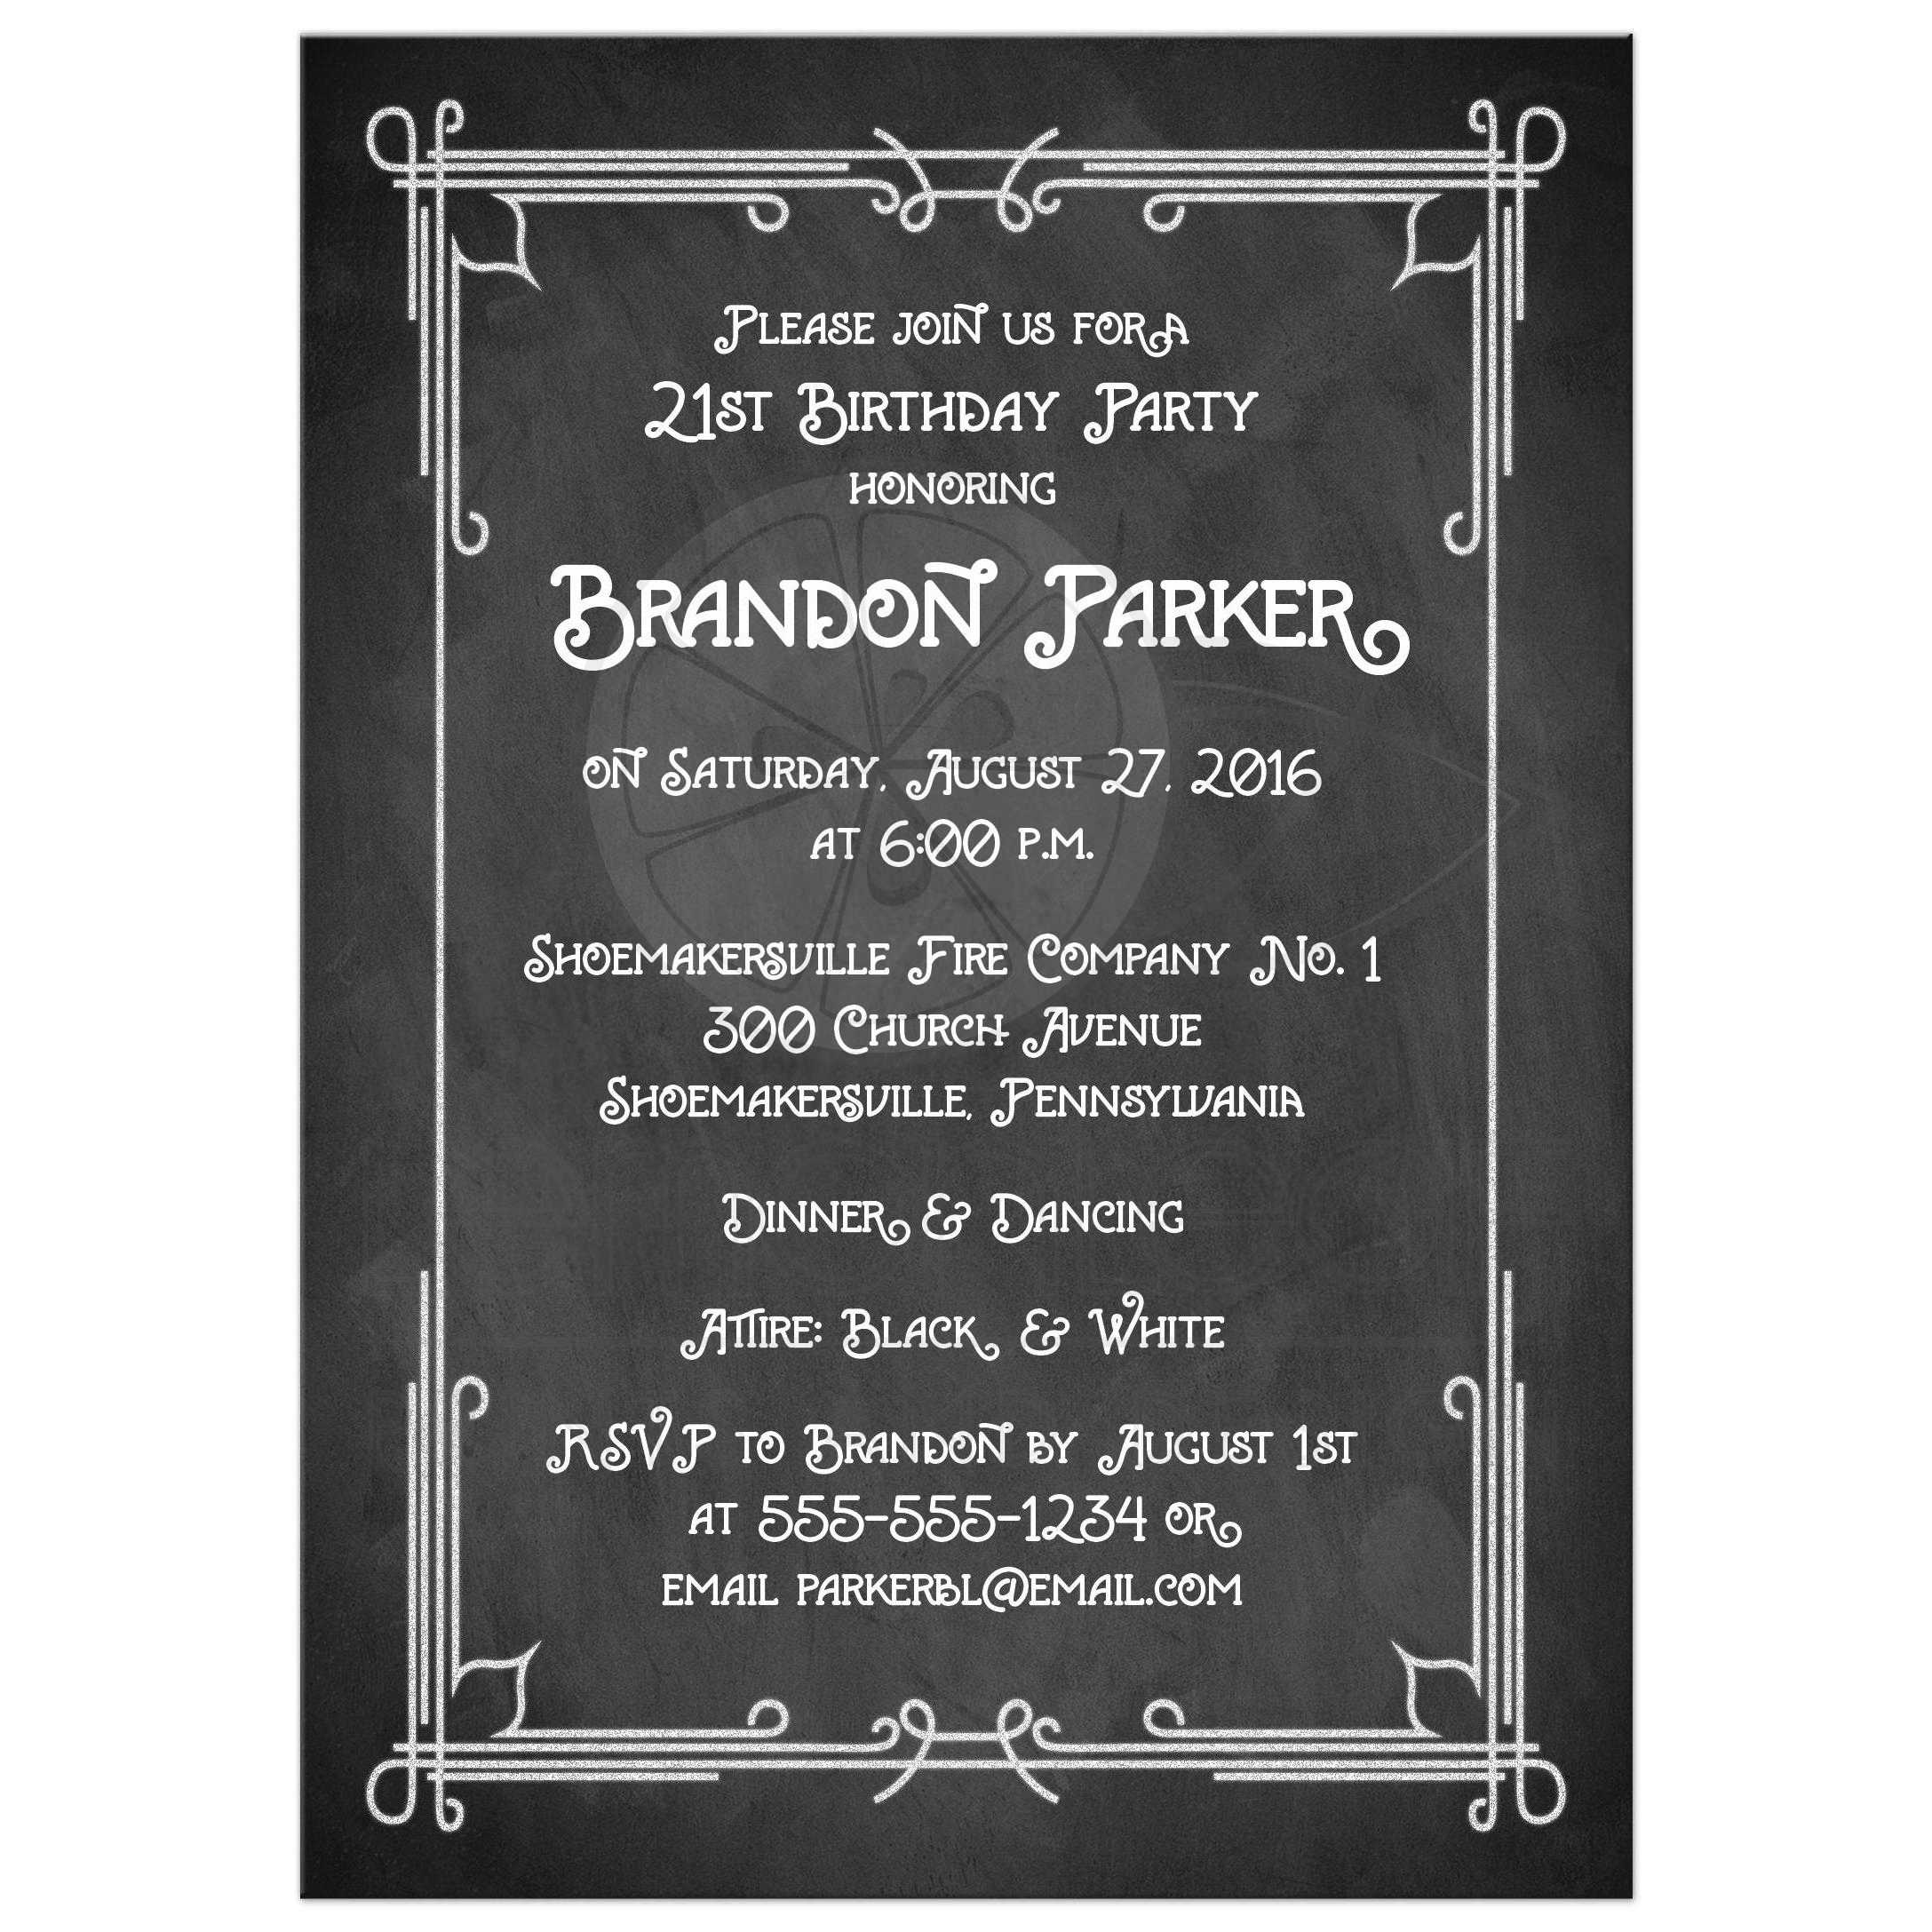 Business Holiday Party Invitations for amazing invitations layout